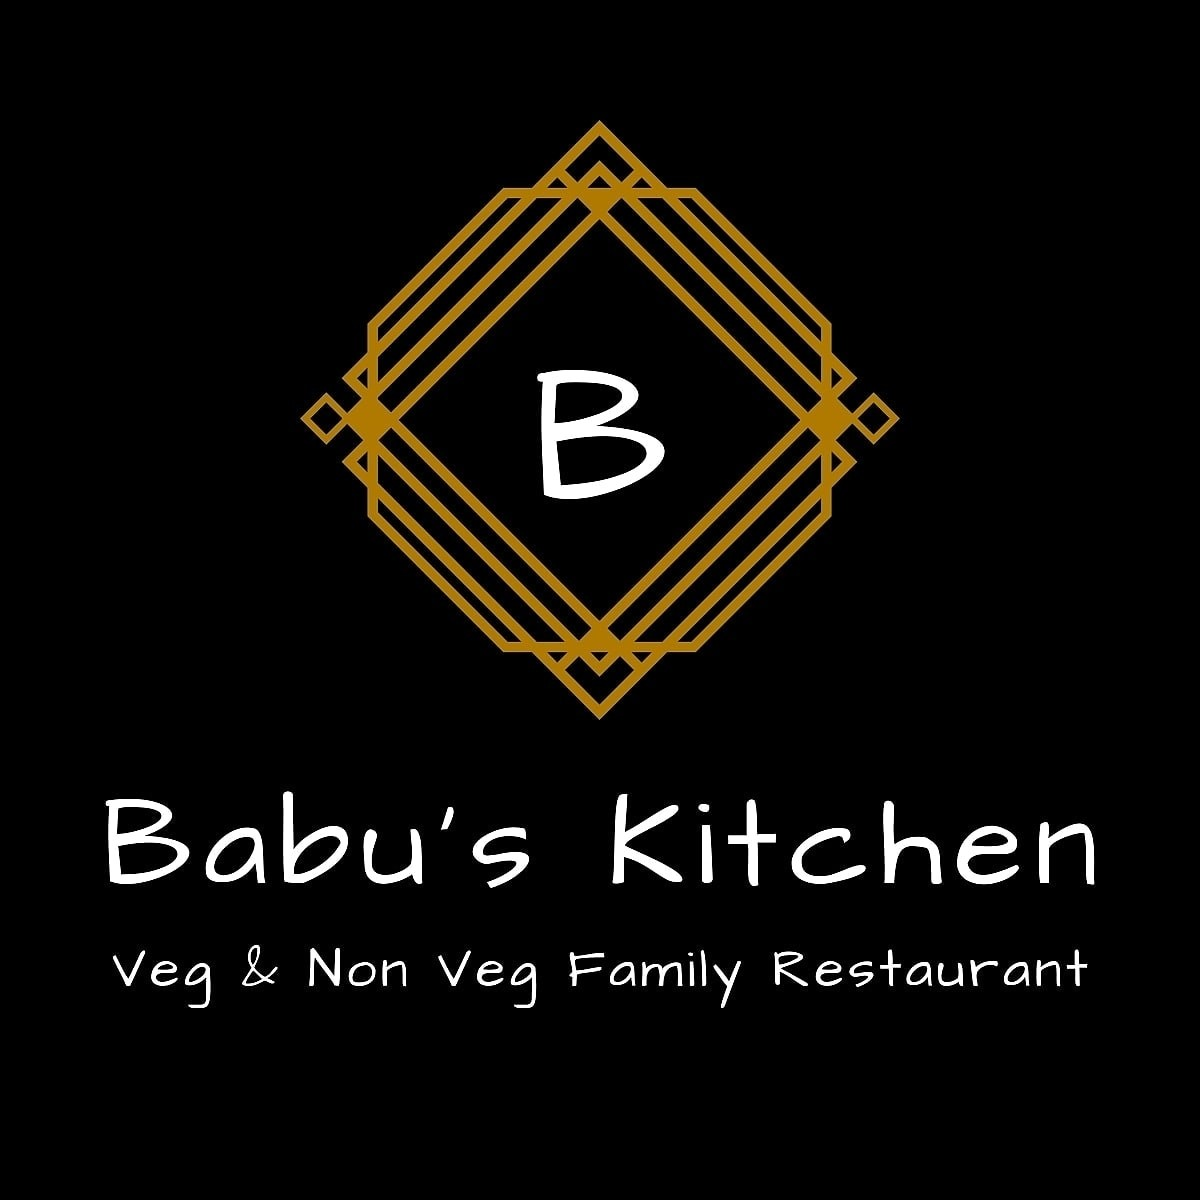 Babu's Kitchen Veg & Non Veg Restaurant